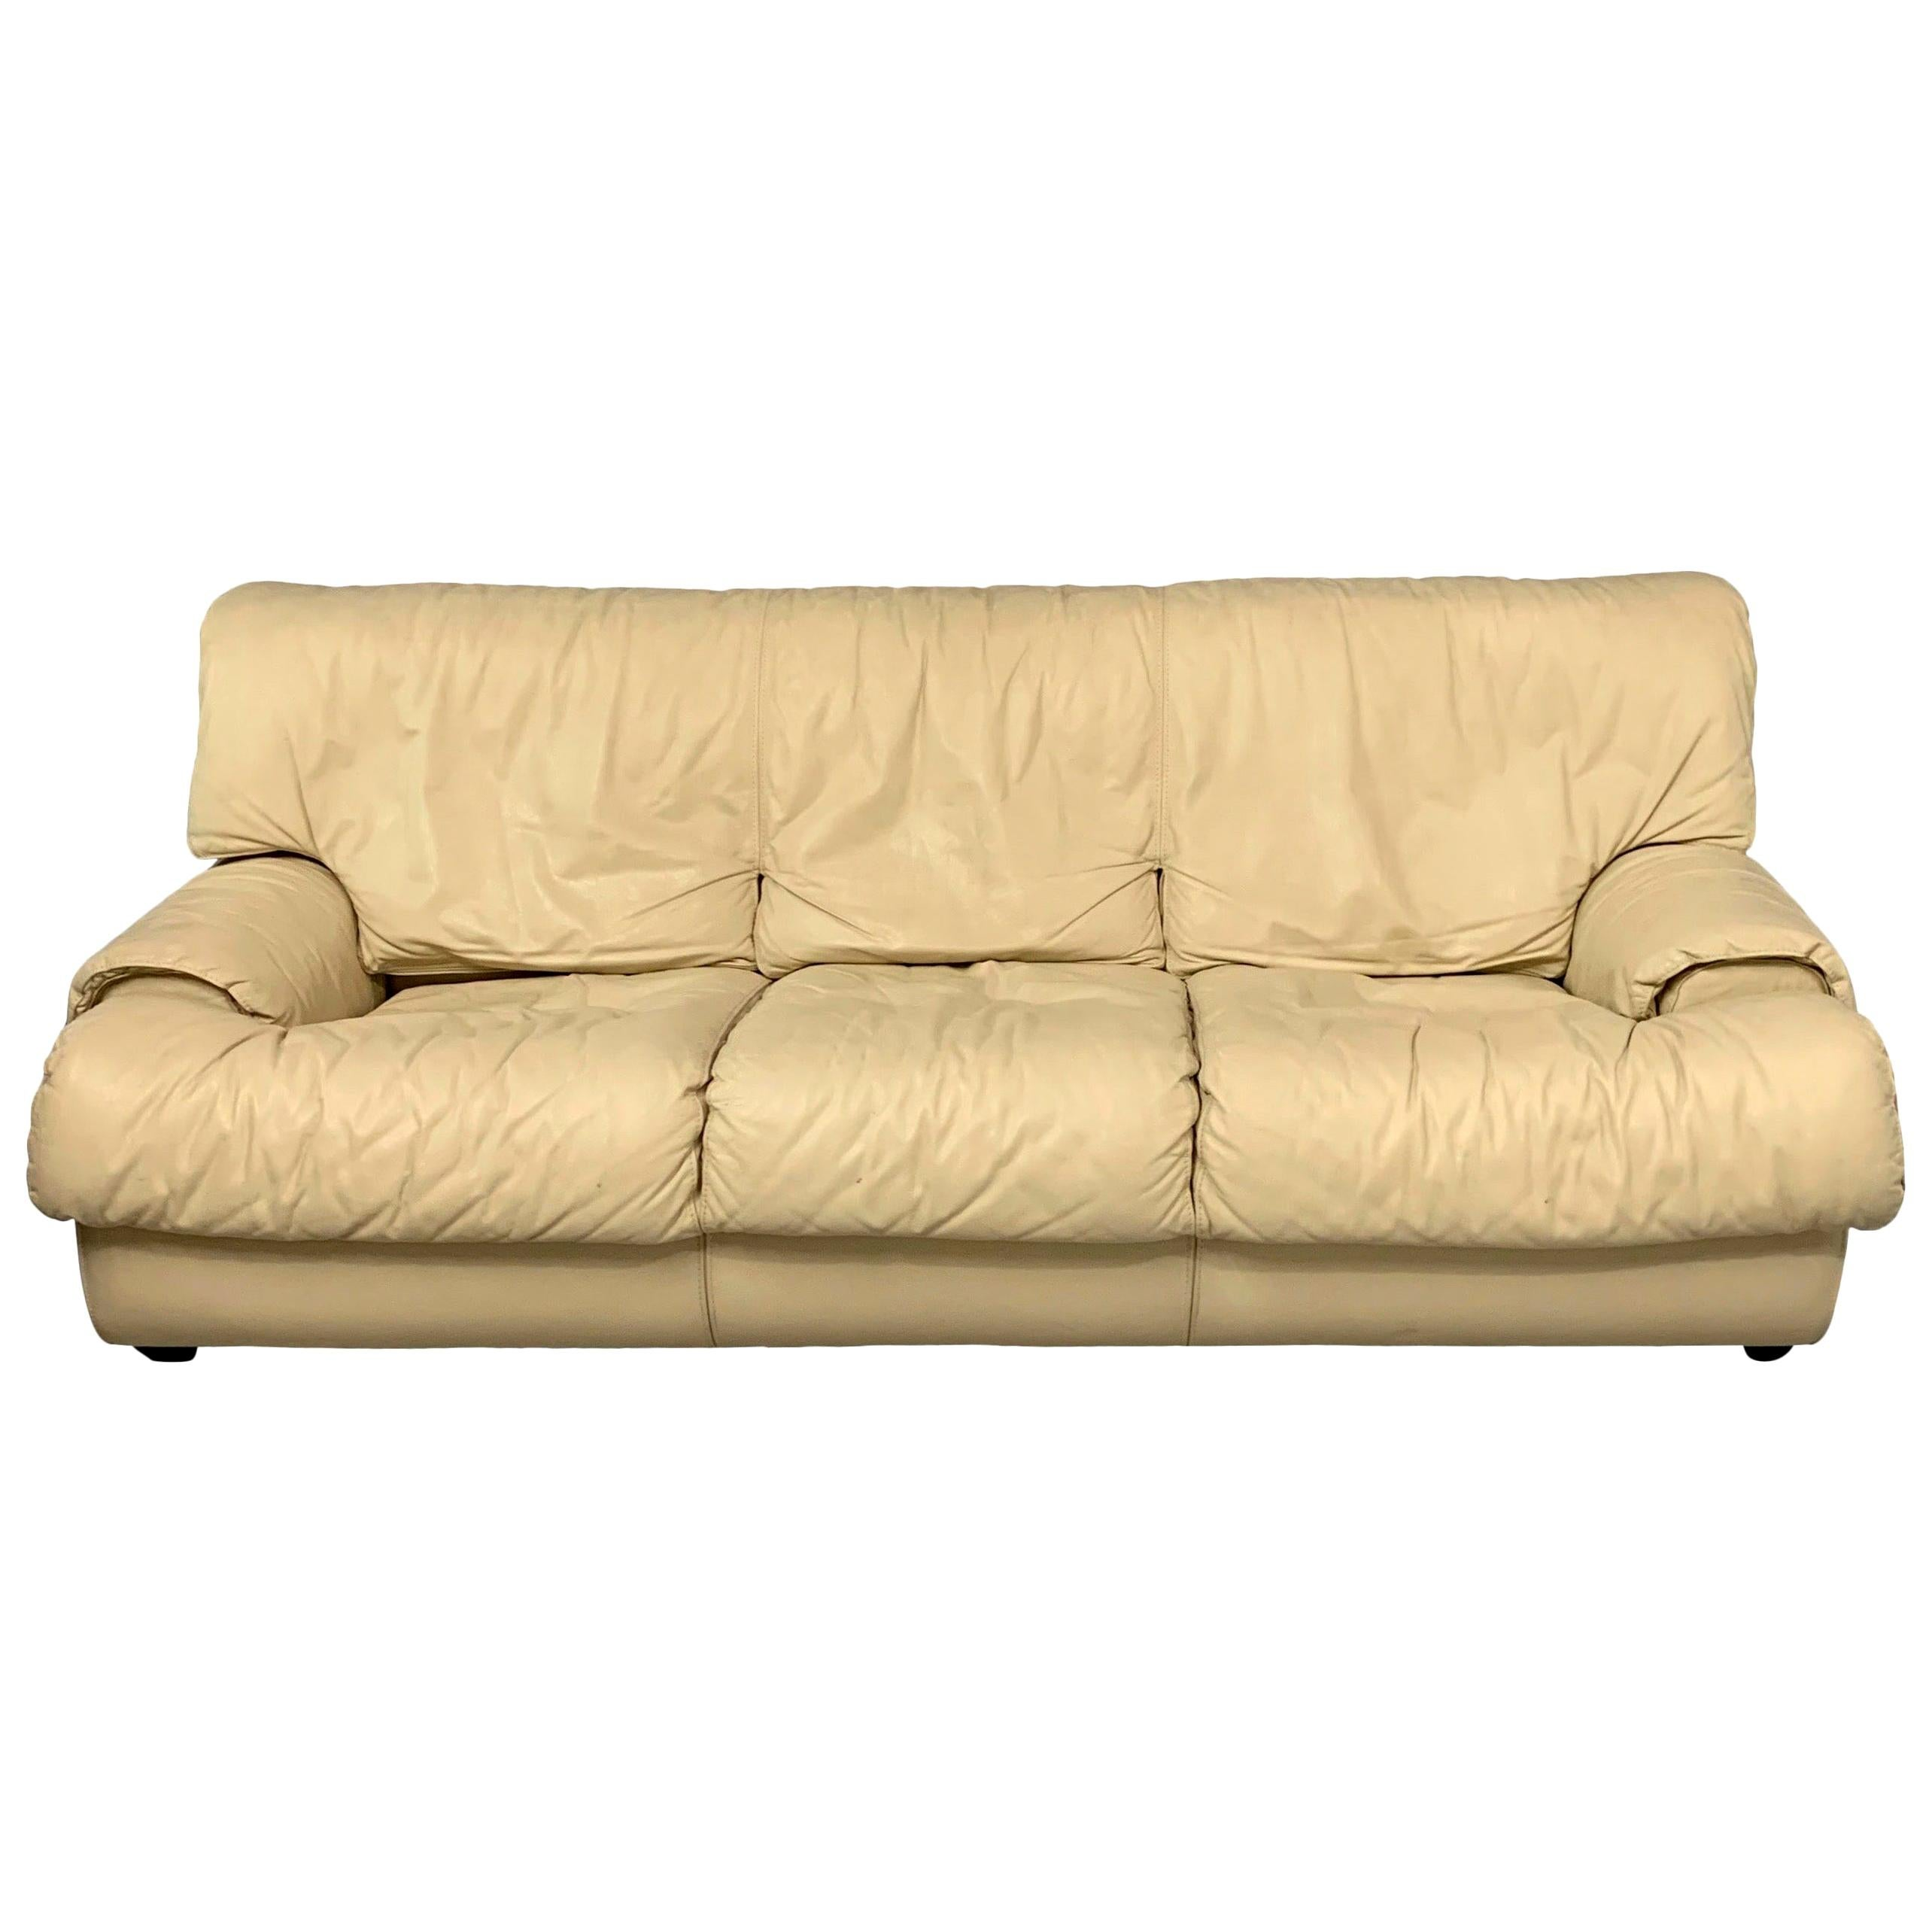 Postmodern 1980s Sofa by Roche Bobois in Draped Soft Leather